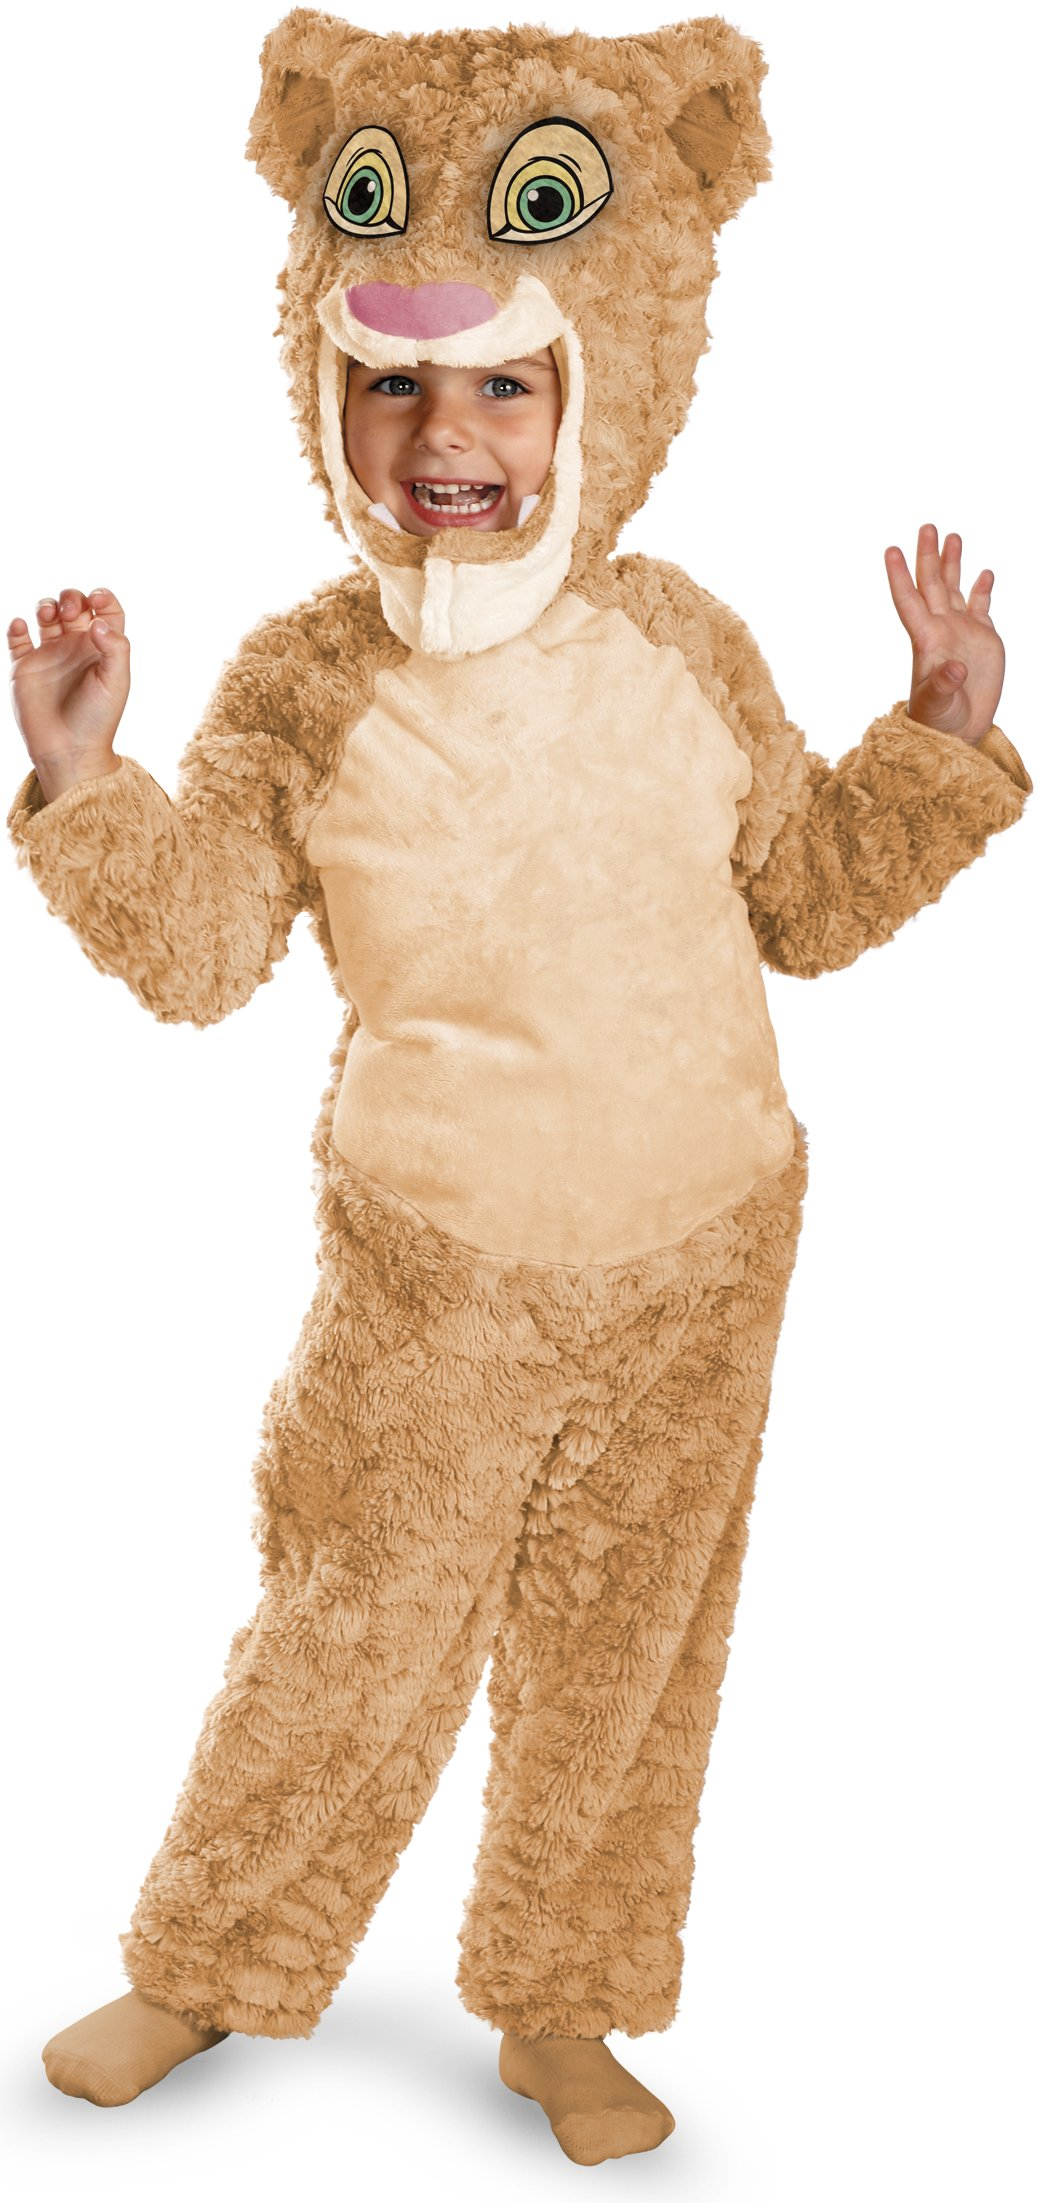 The Lion King - Nala Toddler / Child Costume